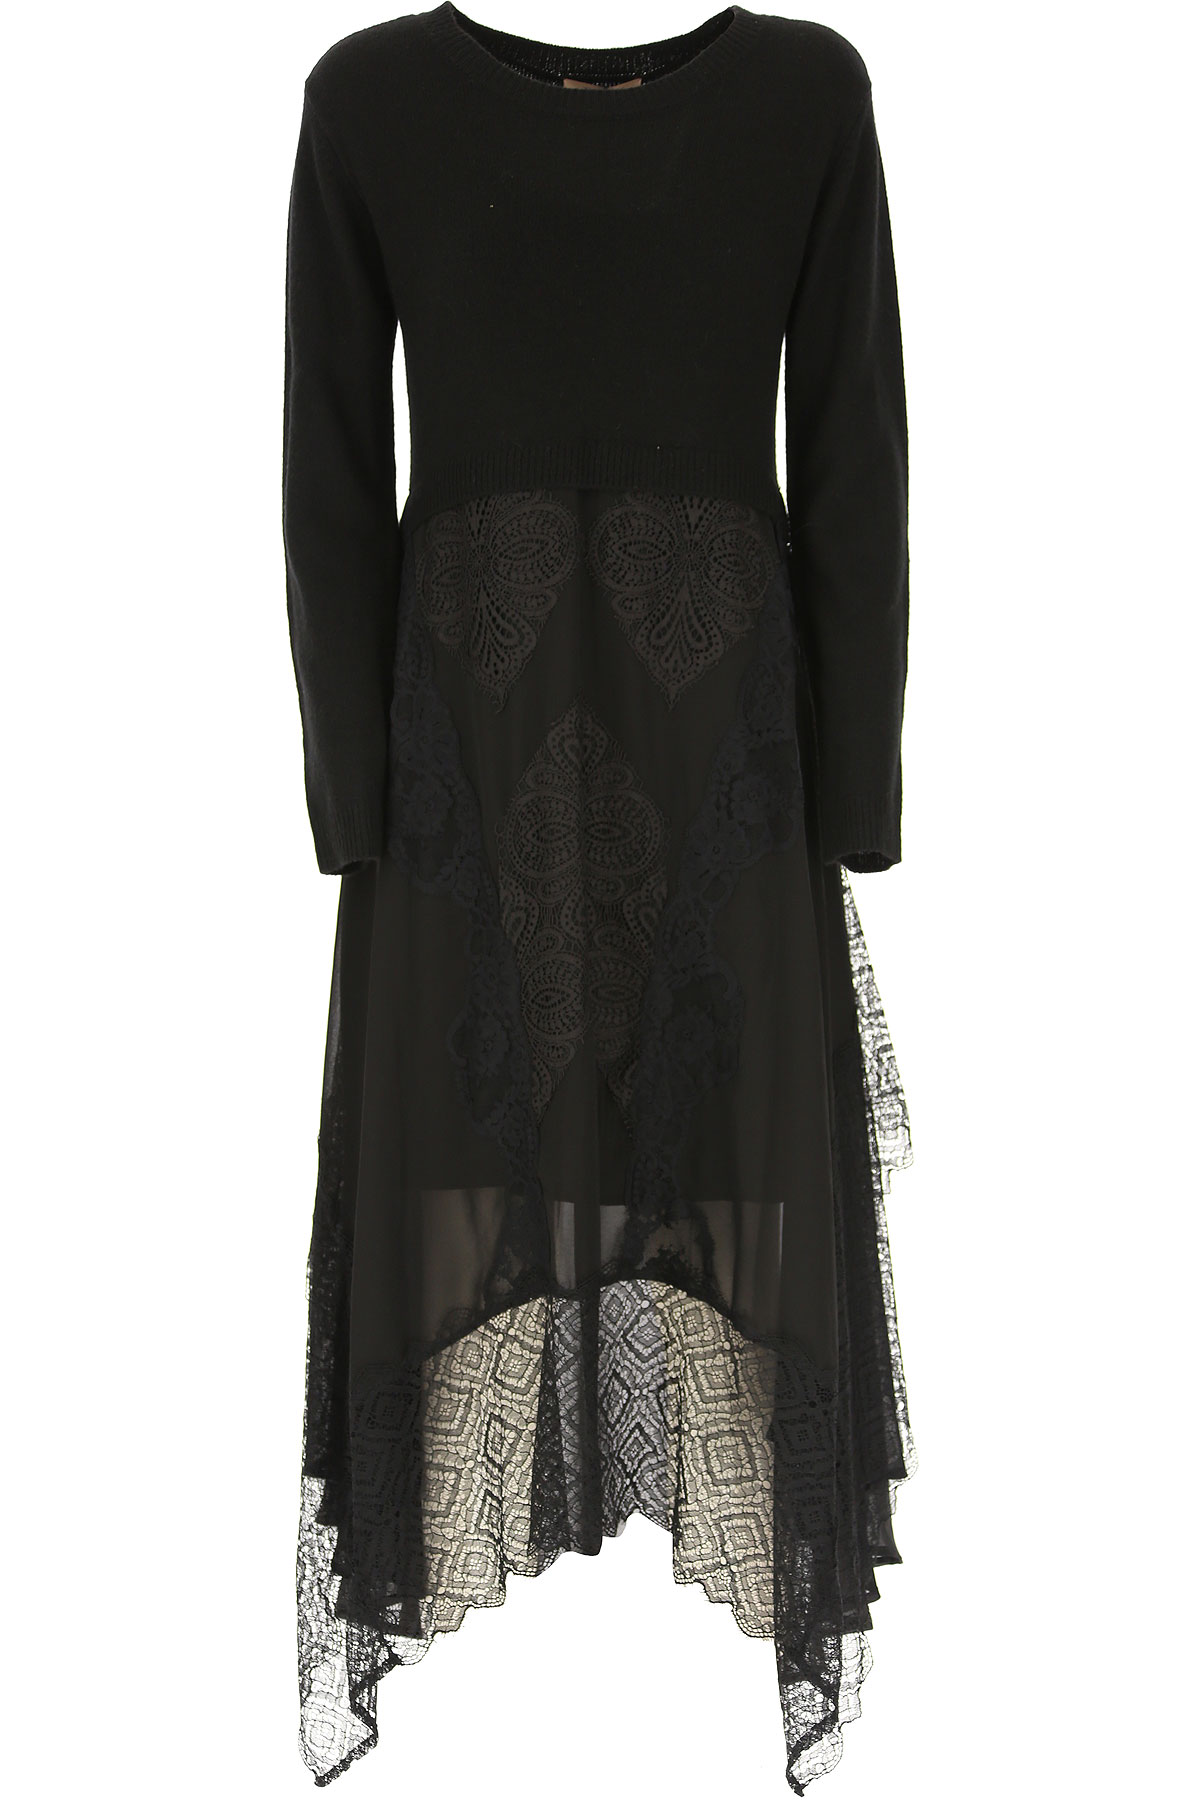 Twin Set by Simona Barbieri Dress for Women, Evening Cocktail Party On Sale, Black, Viscose, 2019, 10 4 6 8